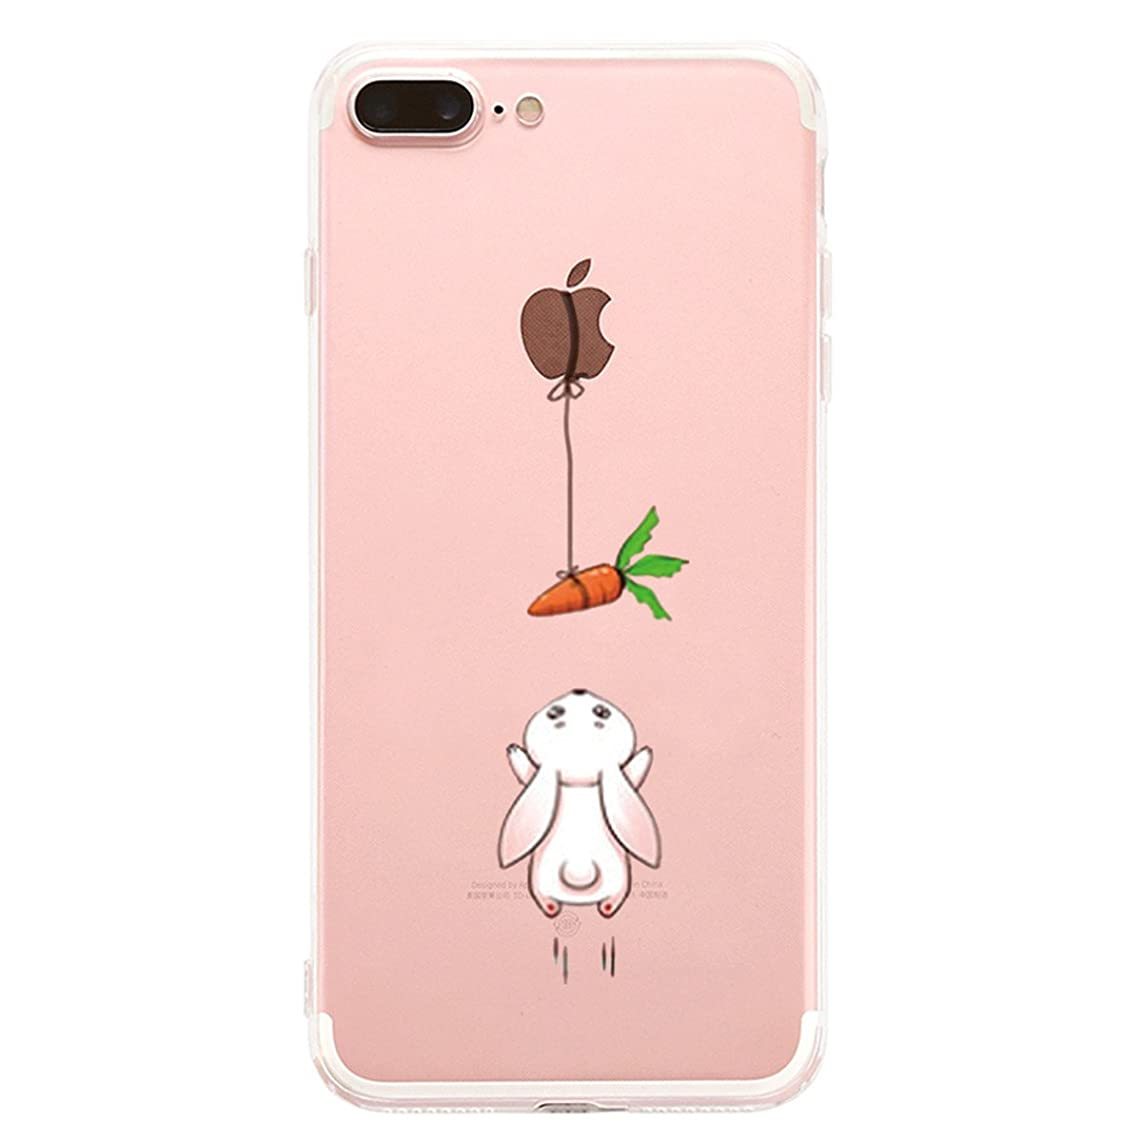 Matop Compatible for iPhone 7 Plus iPhone 8 Plus Case,Clear Shockproof Ultra Thin Protective Case Silicone TPU Rabbit Elephant Soft Cover for iPhone 7 Plus / 8 Plus 5.5 inch (Rabbit Carrot)